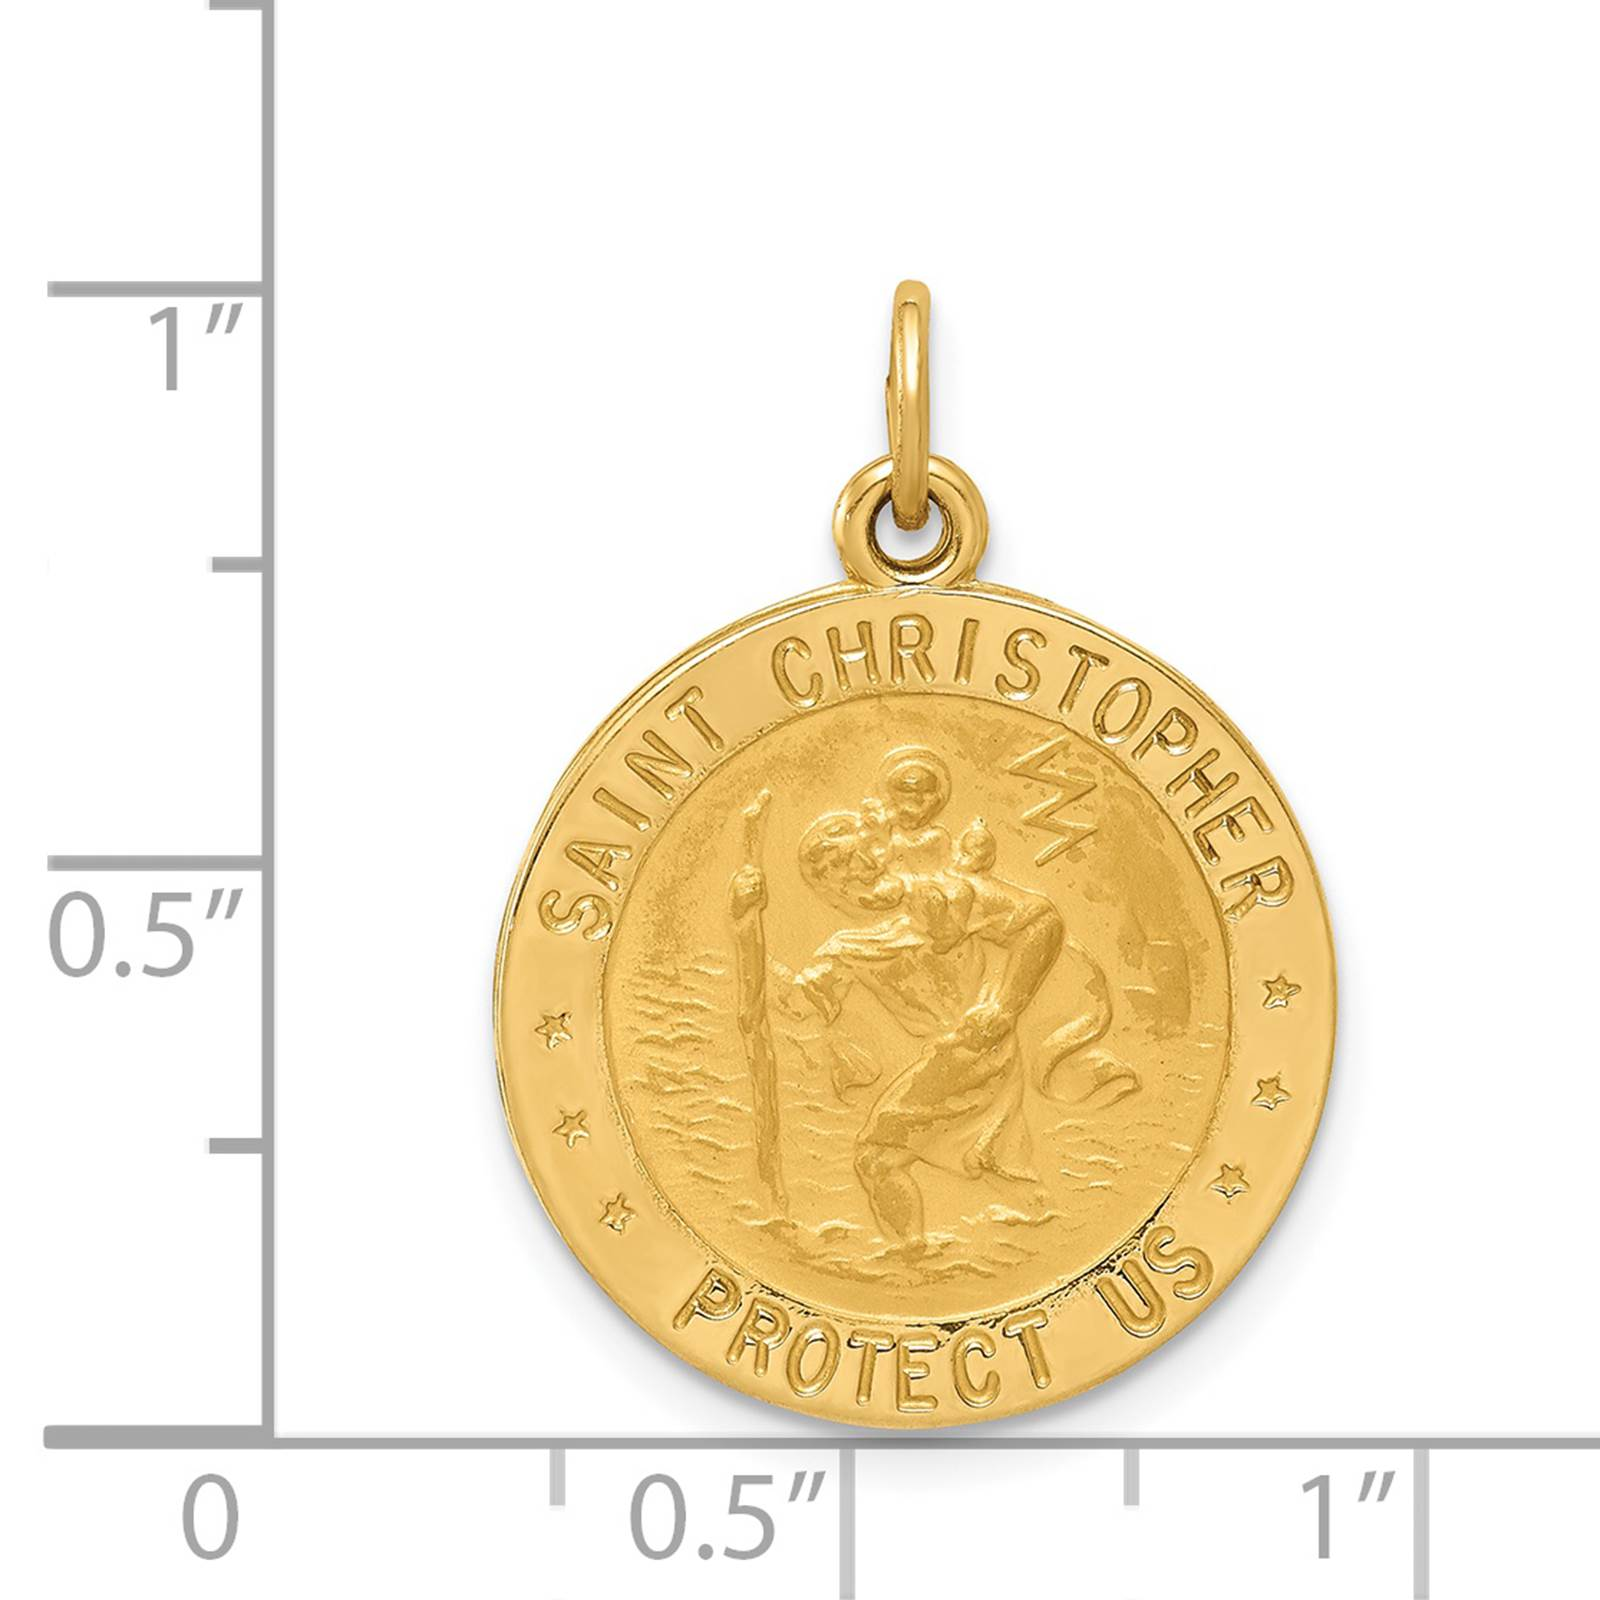 Details about  /Real 10kt Yellow Gold Polished Floral Charm Holder